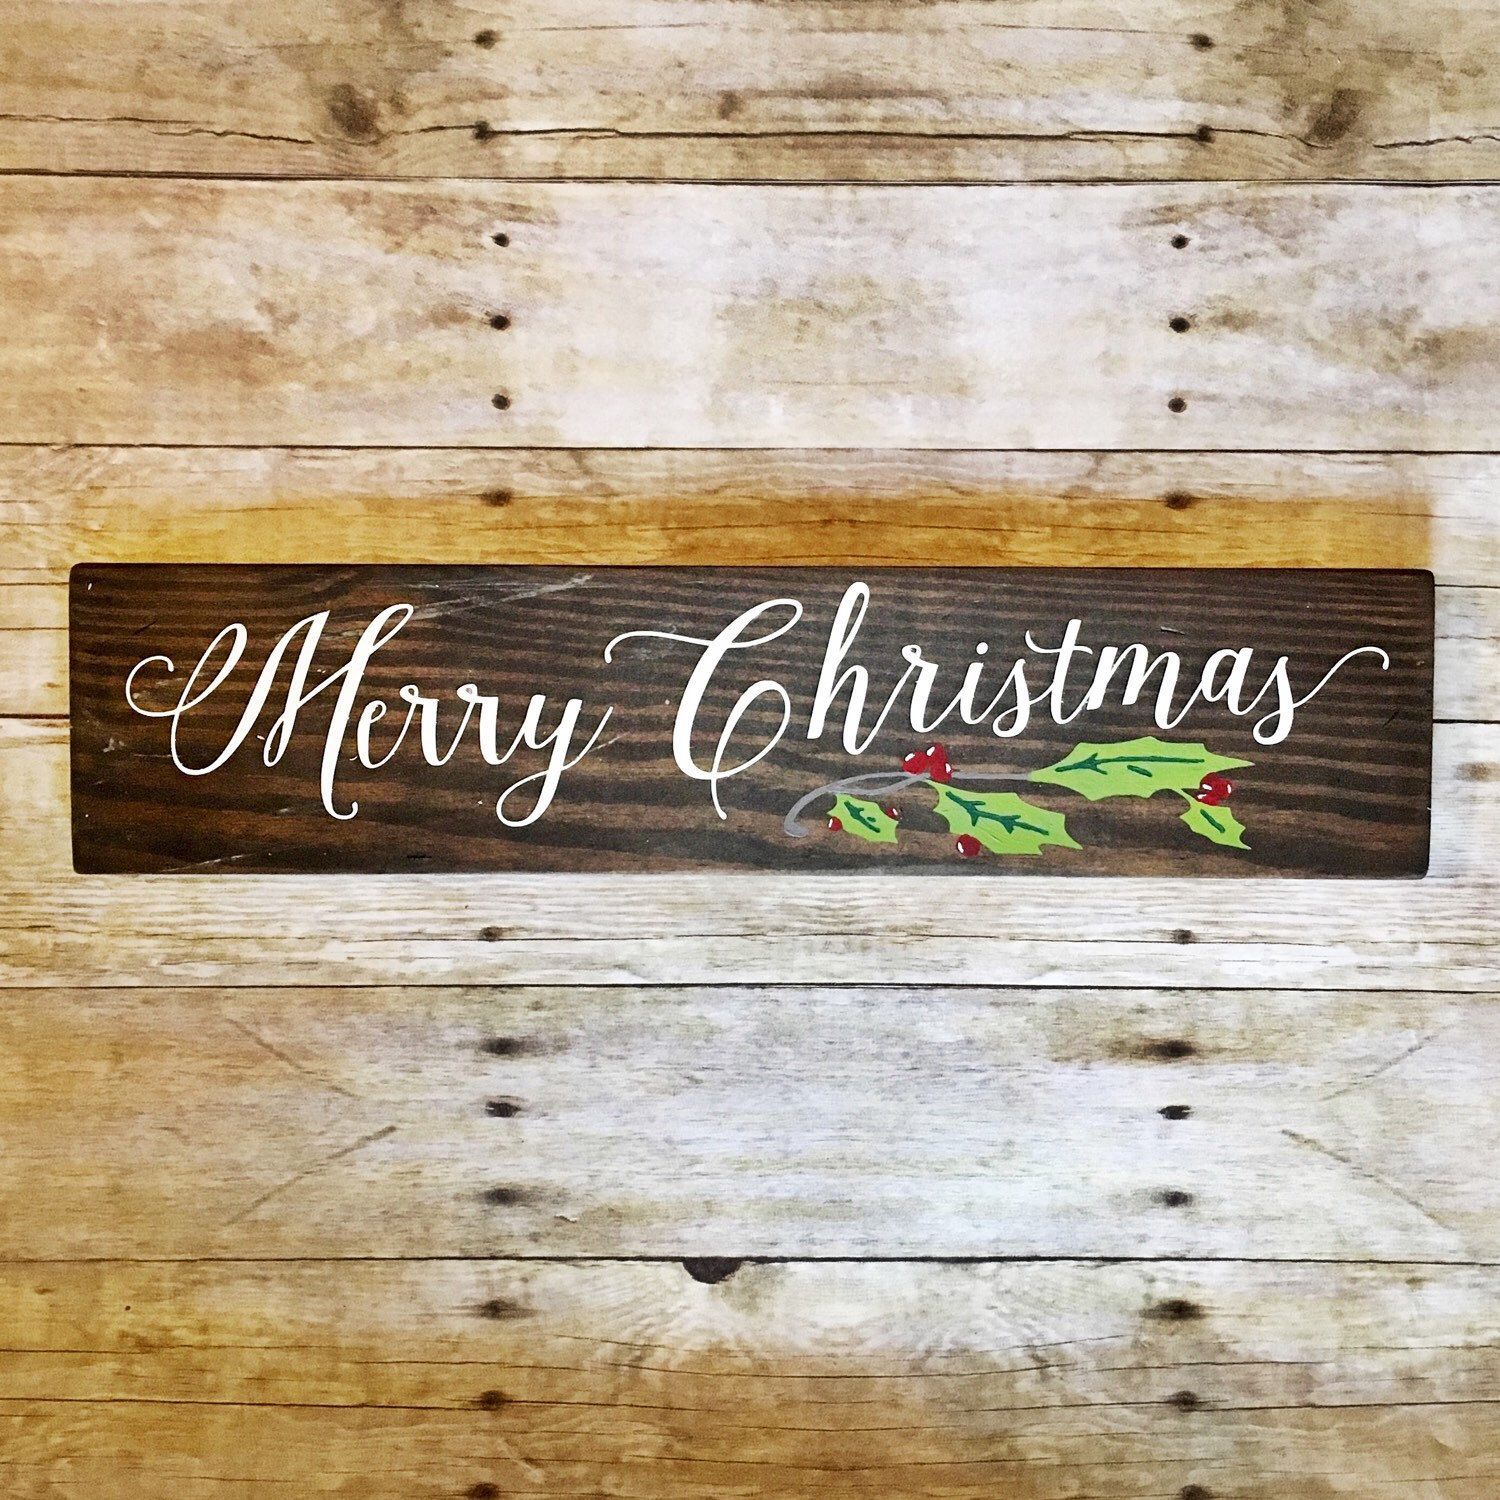 Merry Christmas Sign Wood By Cherryhollowlane On Etsy Https